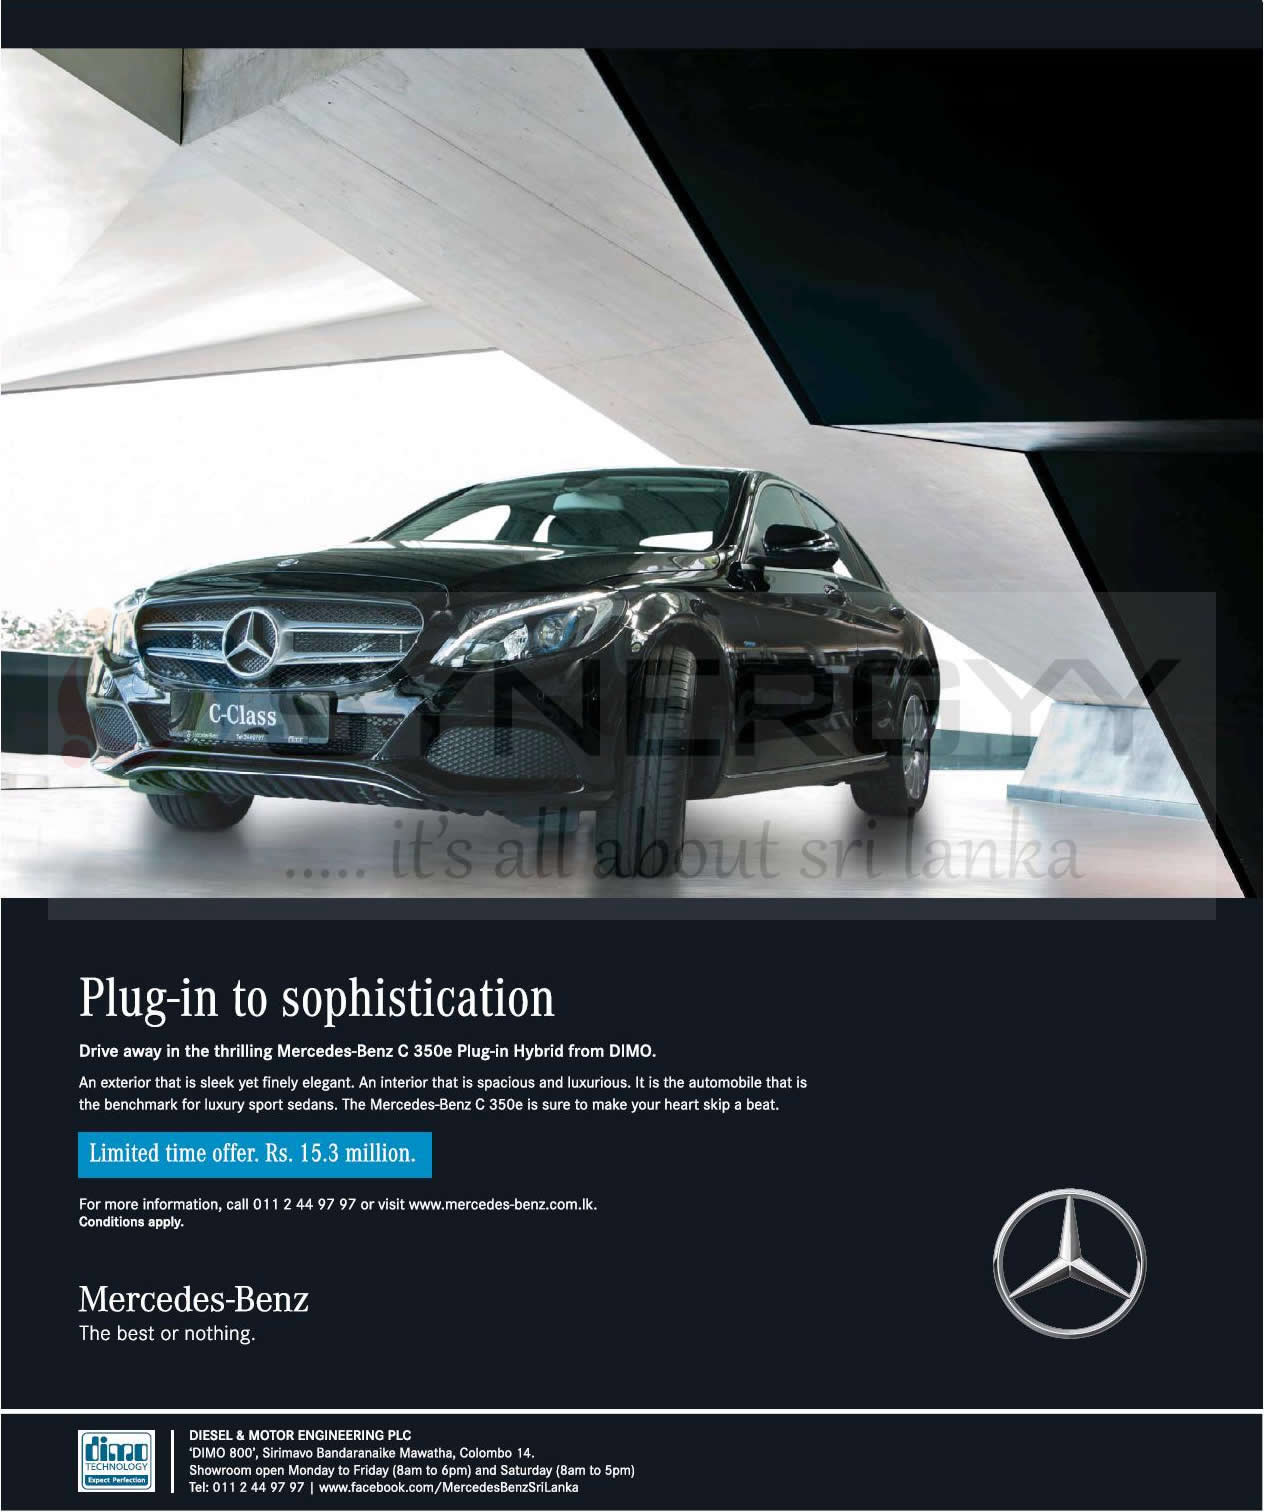 Mercedes-Benz C 350e Plug-in Hybrid For Rs. 15.3 Million